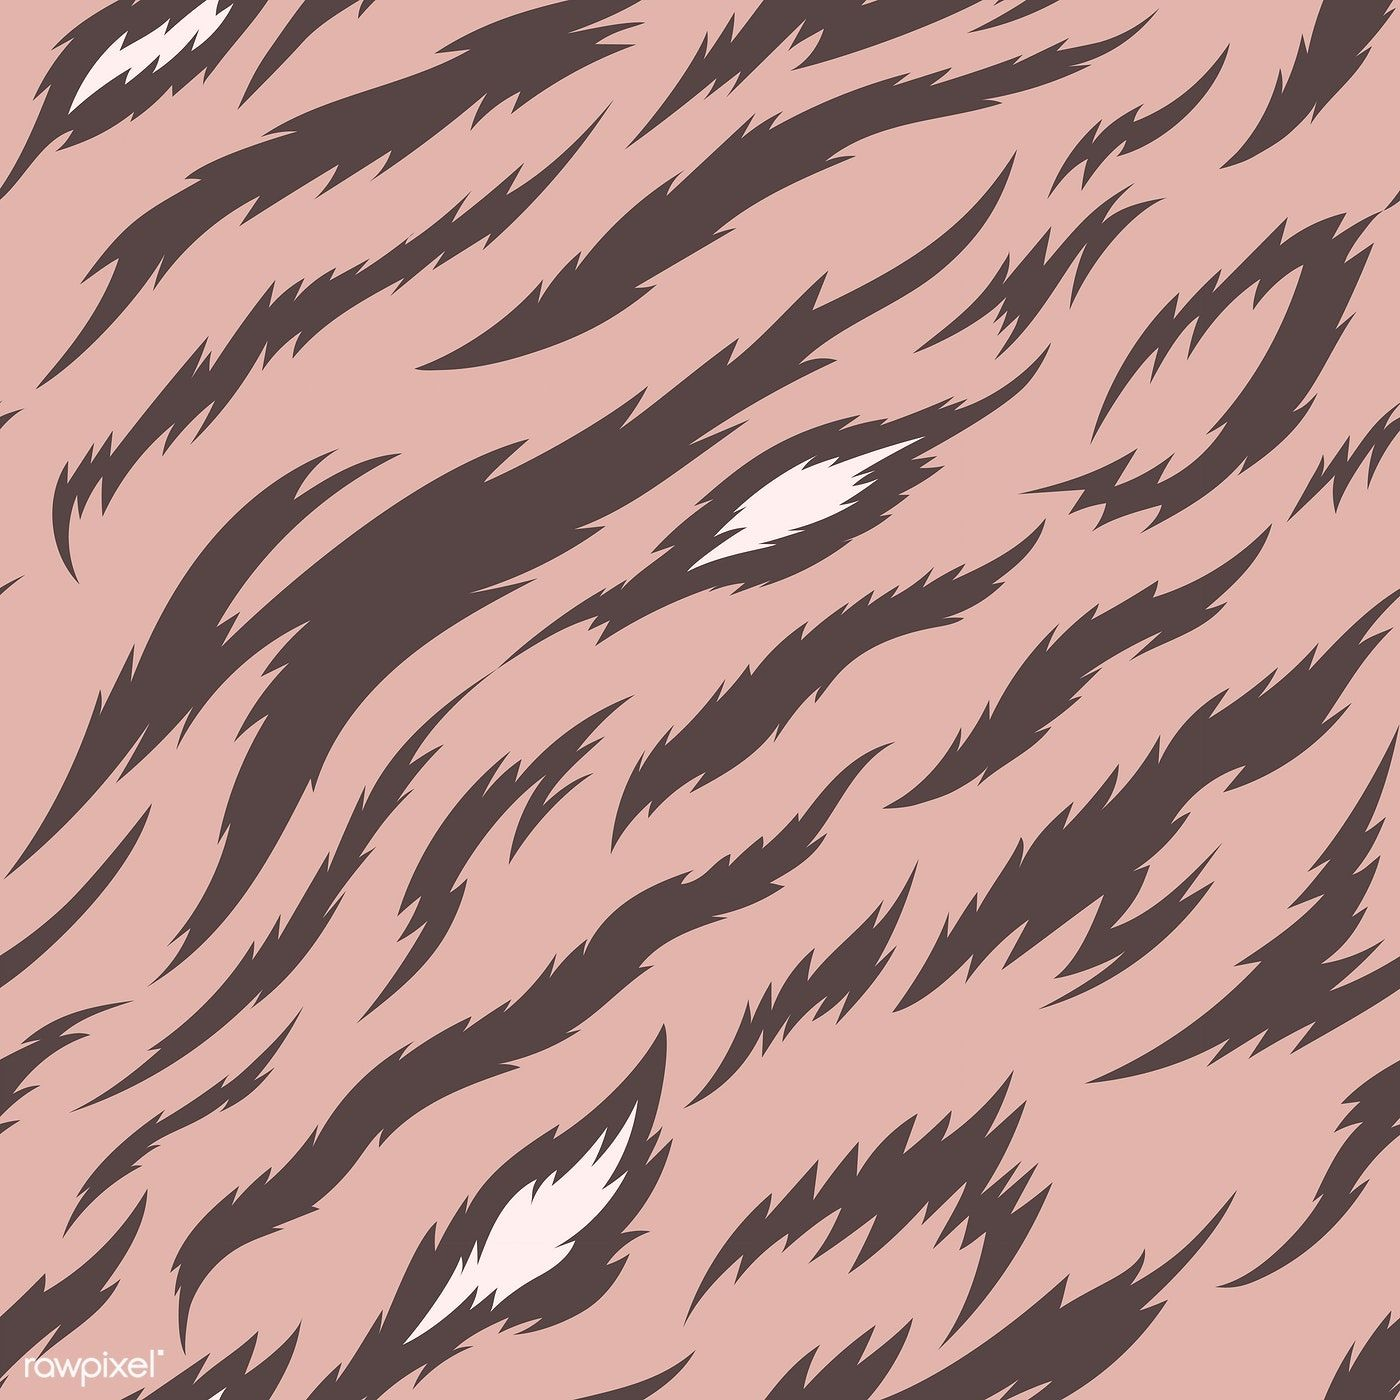 Tiger Stripes Seamless Vector Pattern Free Image By